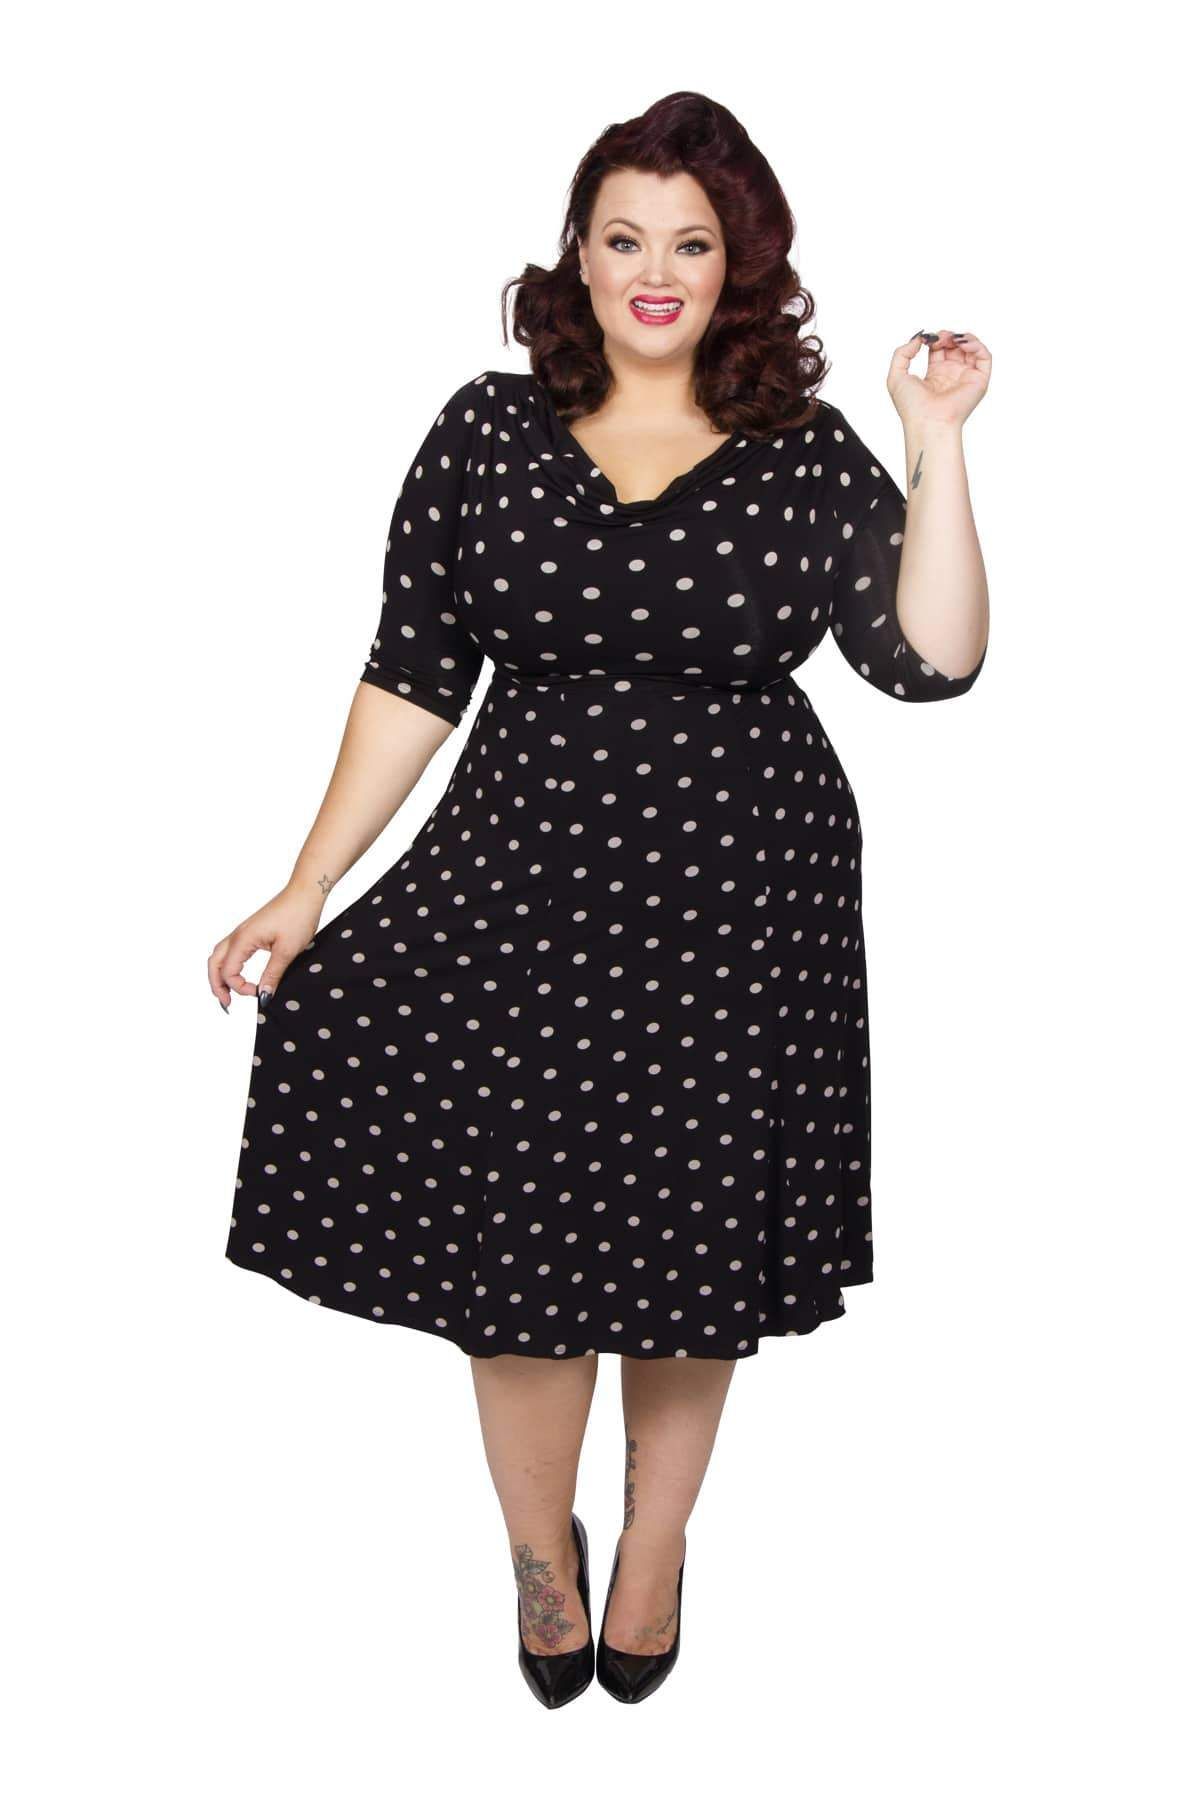 f893ecc74a72 1940s Plus Size Fashion: Style Advice from 1940s to Today Lollidot Cowl  Neck 40s Dress